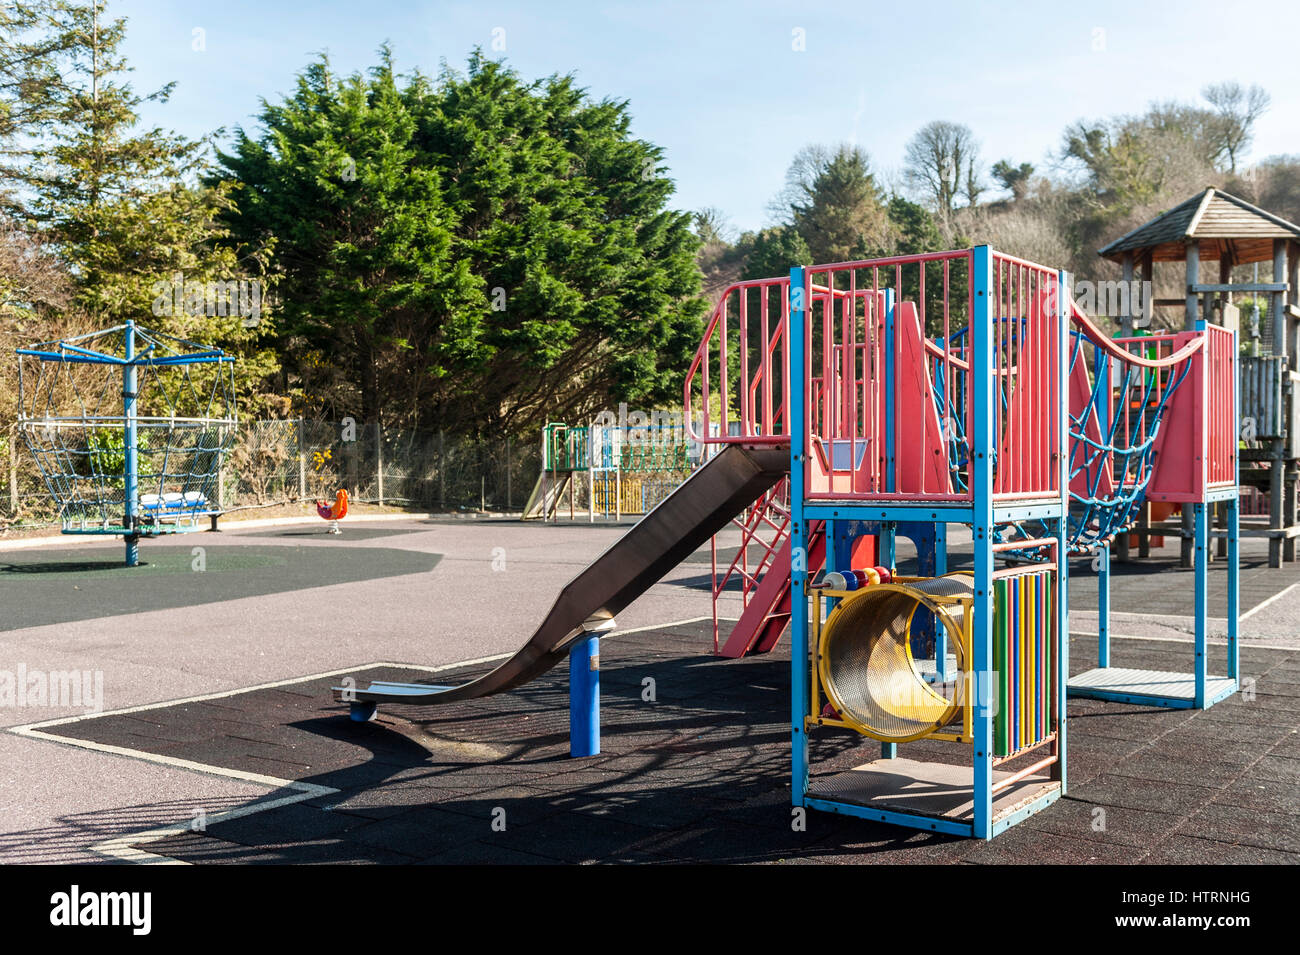 Deserted child's playground in Bantry, West Cork, Ireland with copy space. - Stock Image